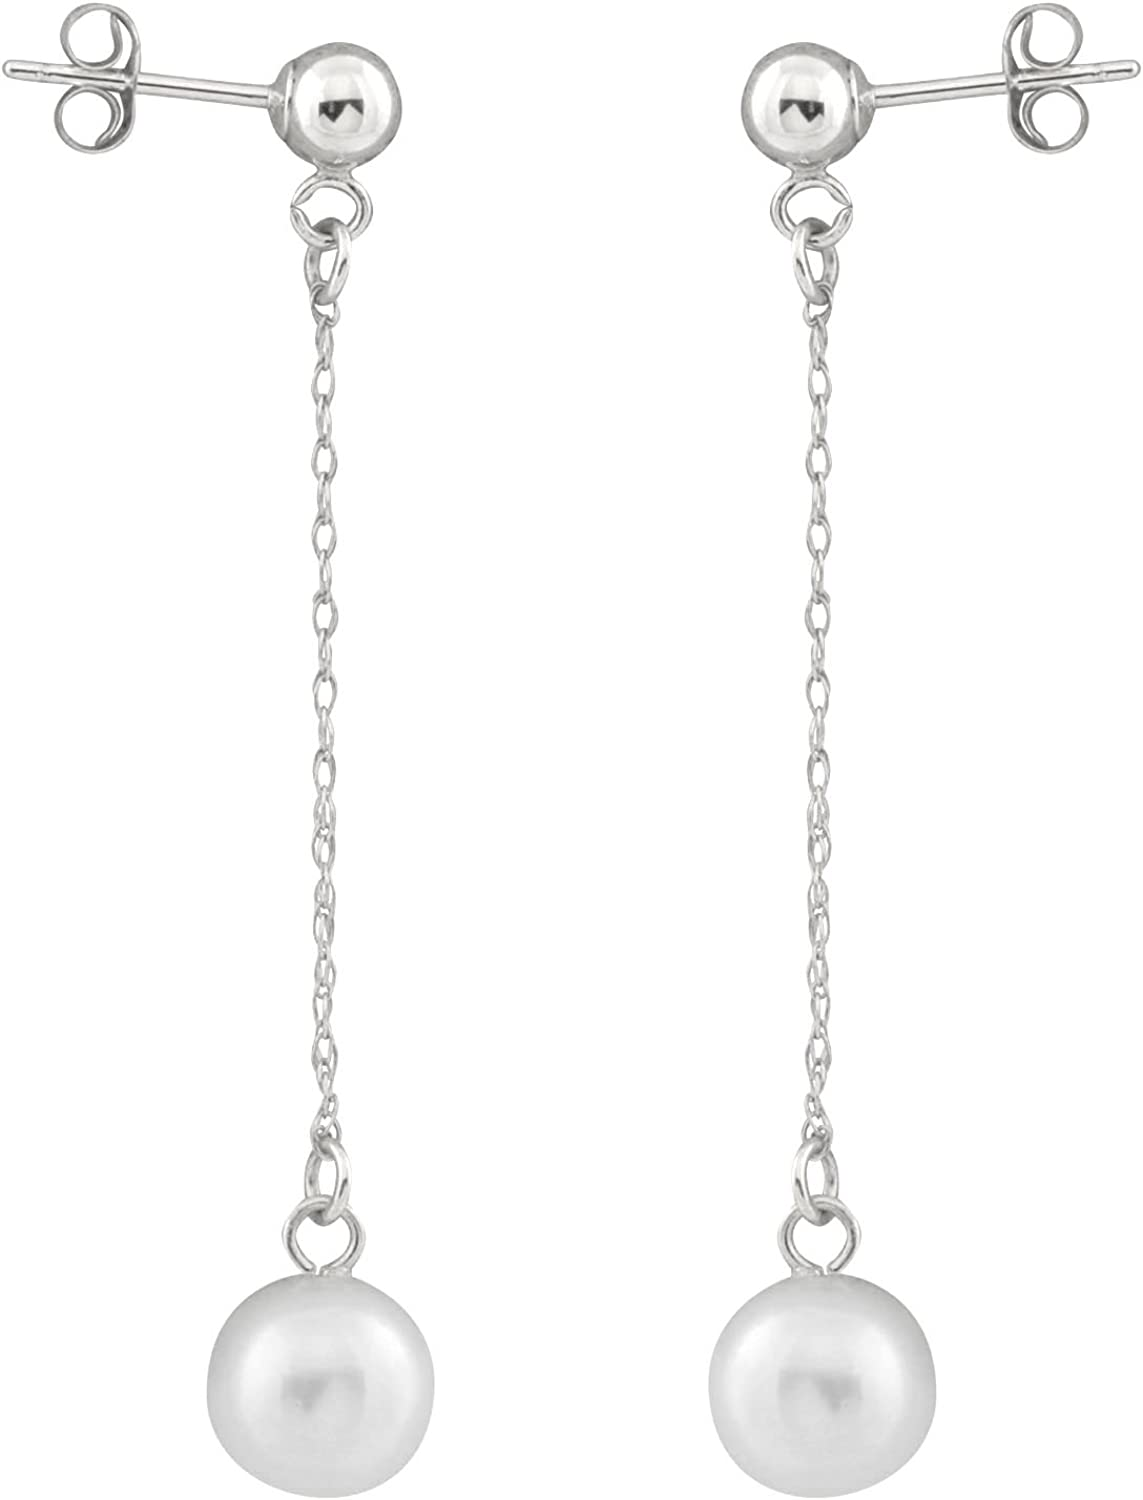 Handpicked AAA Freshwater Cultured Pearls Rhodium-Plated 925 Sterling Silver 17 8.5-9mm Necklace and 6.5-7mm Earrings Set